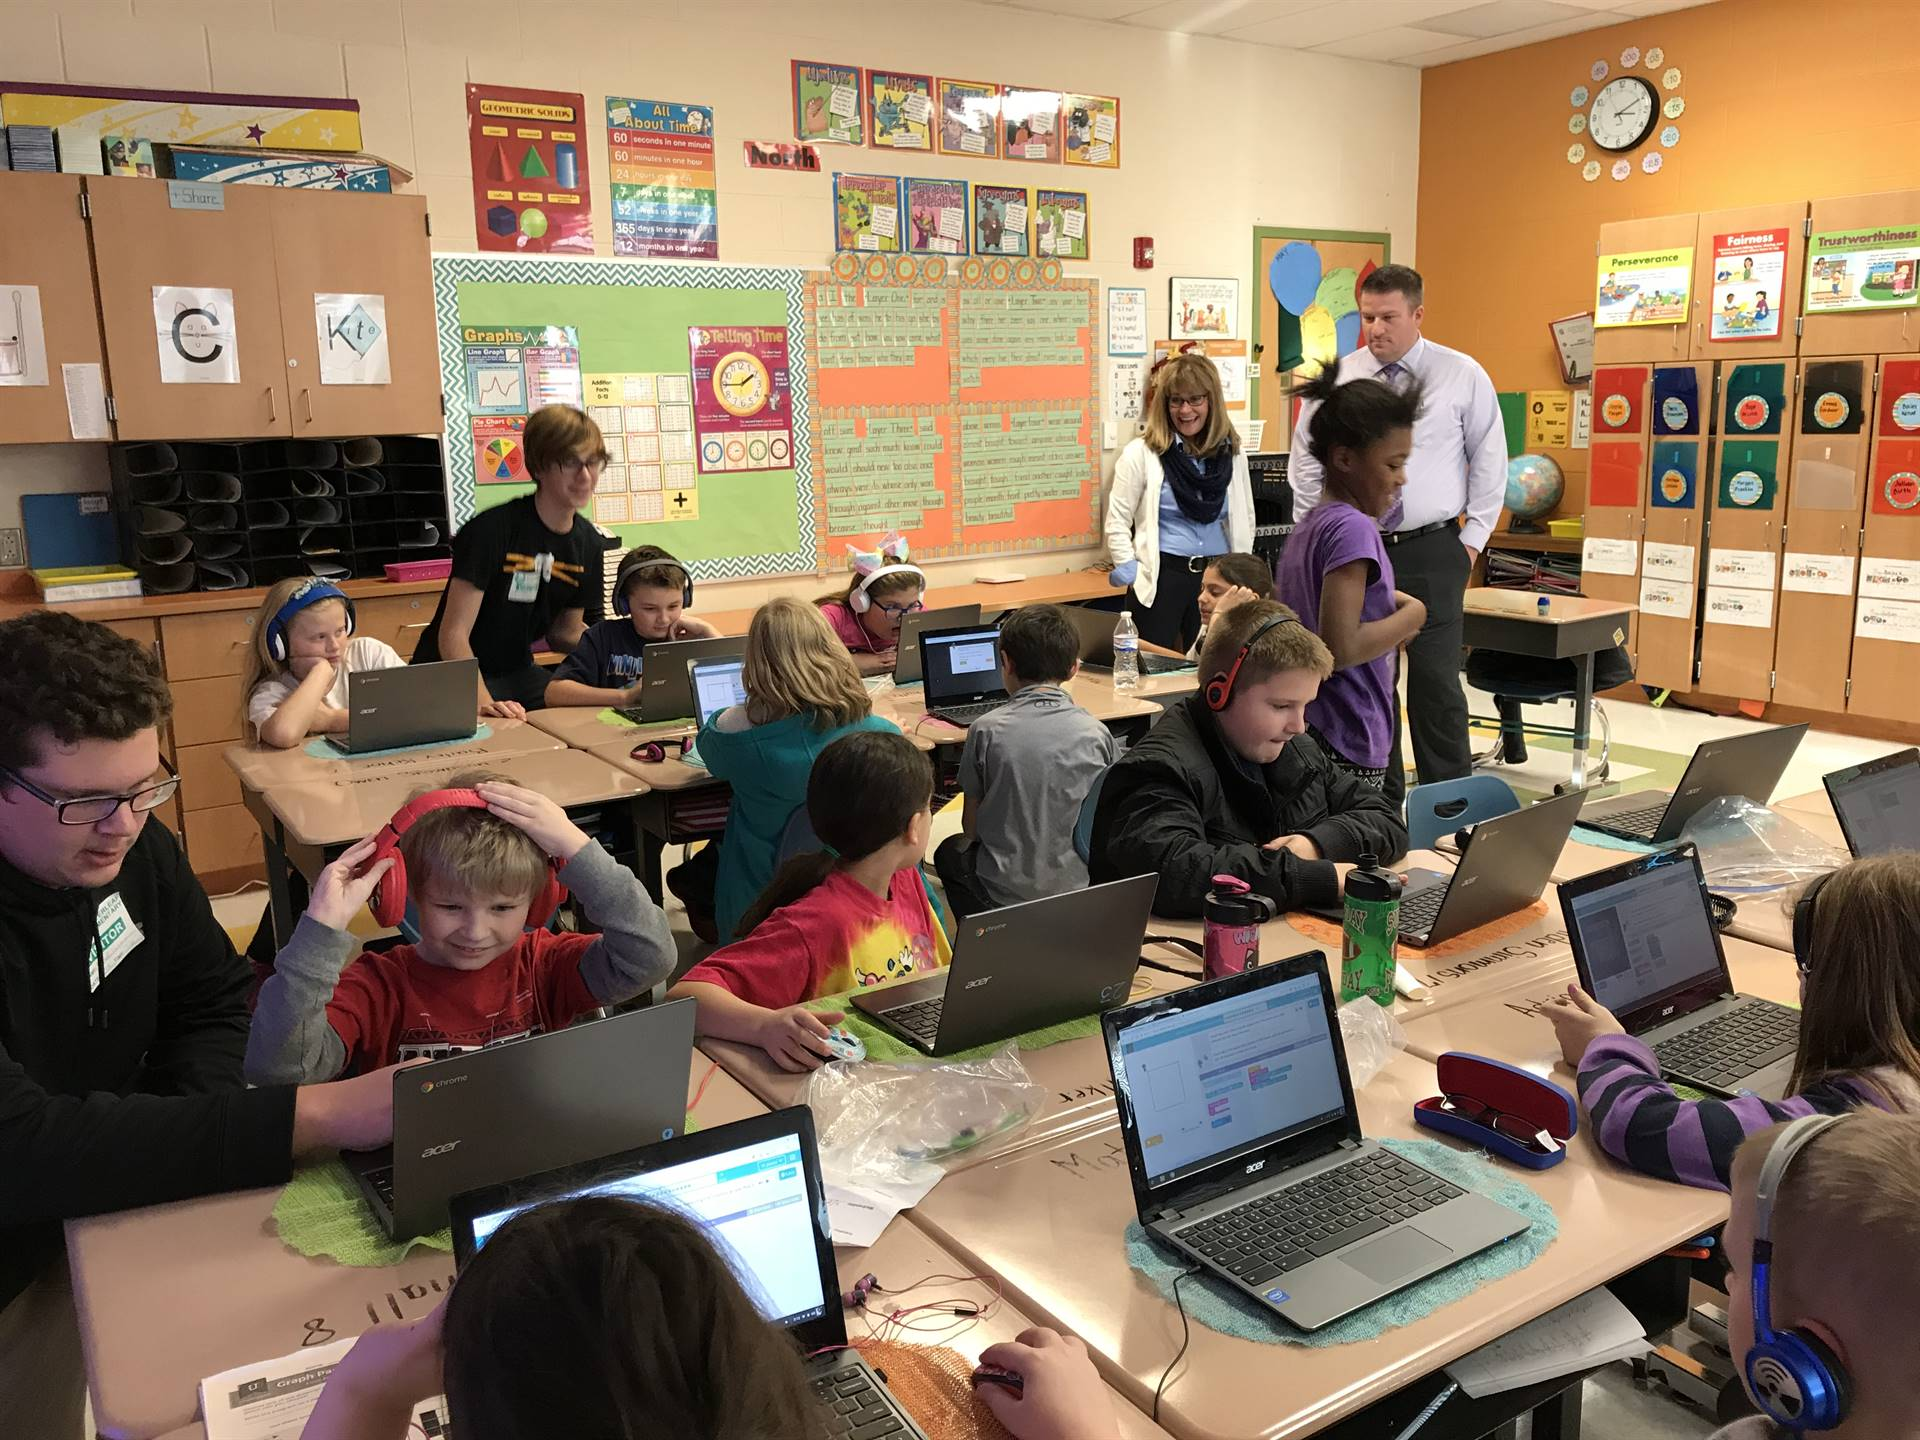 Students collaborate while learning to code.